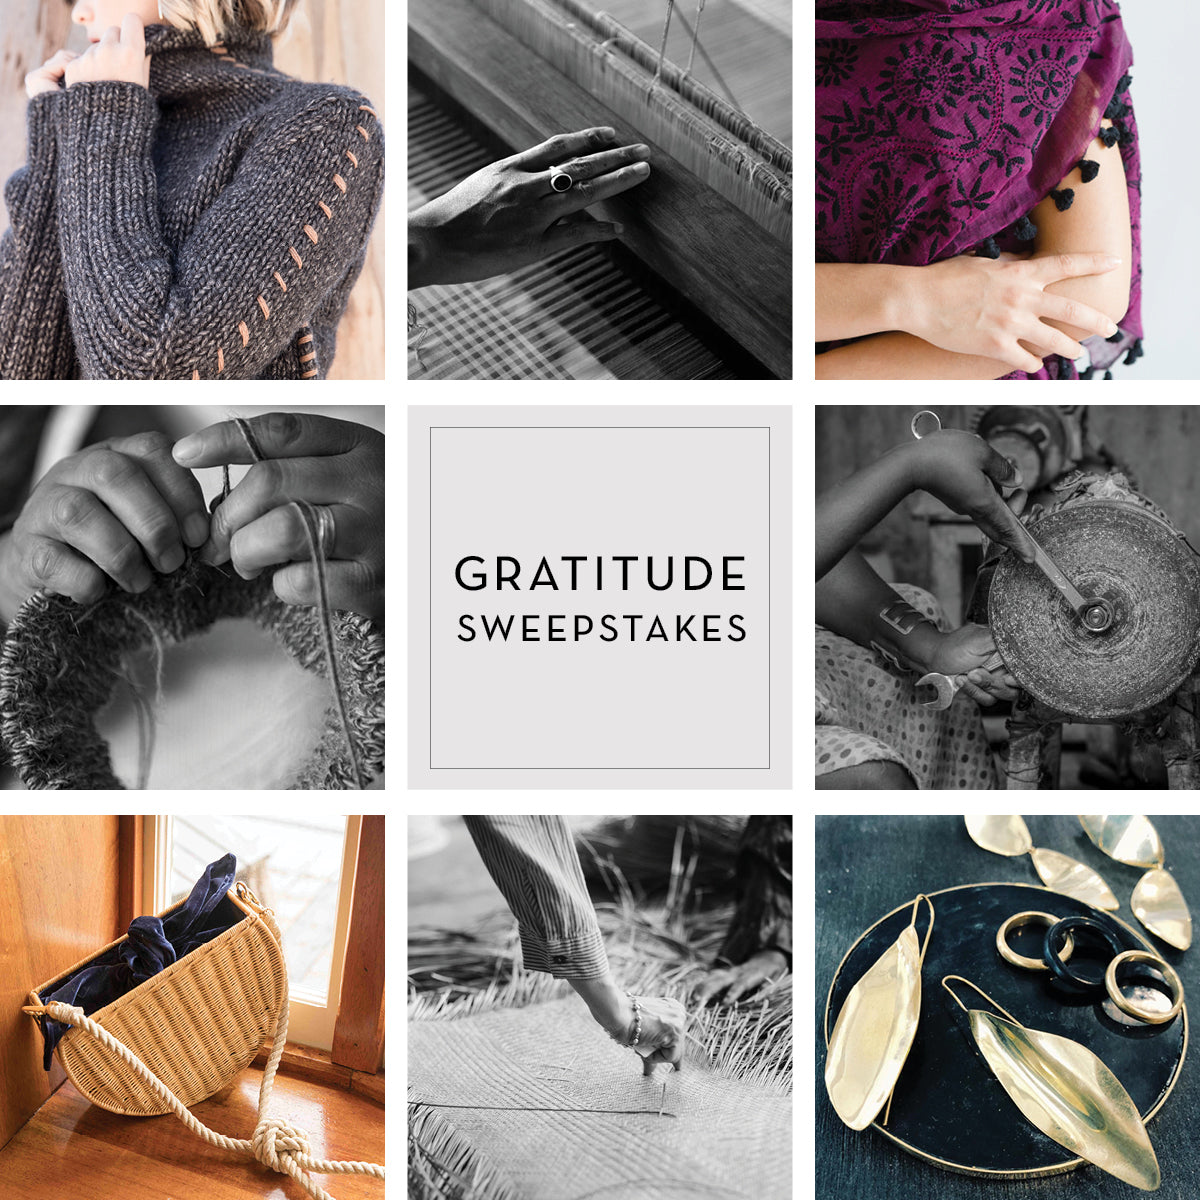 Gratitude Sweepstakes | Enter to Win $1,500 of Ethical Fashion